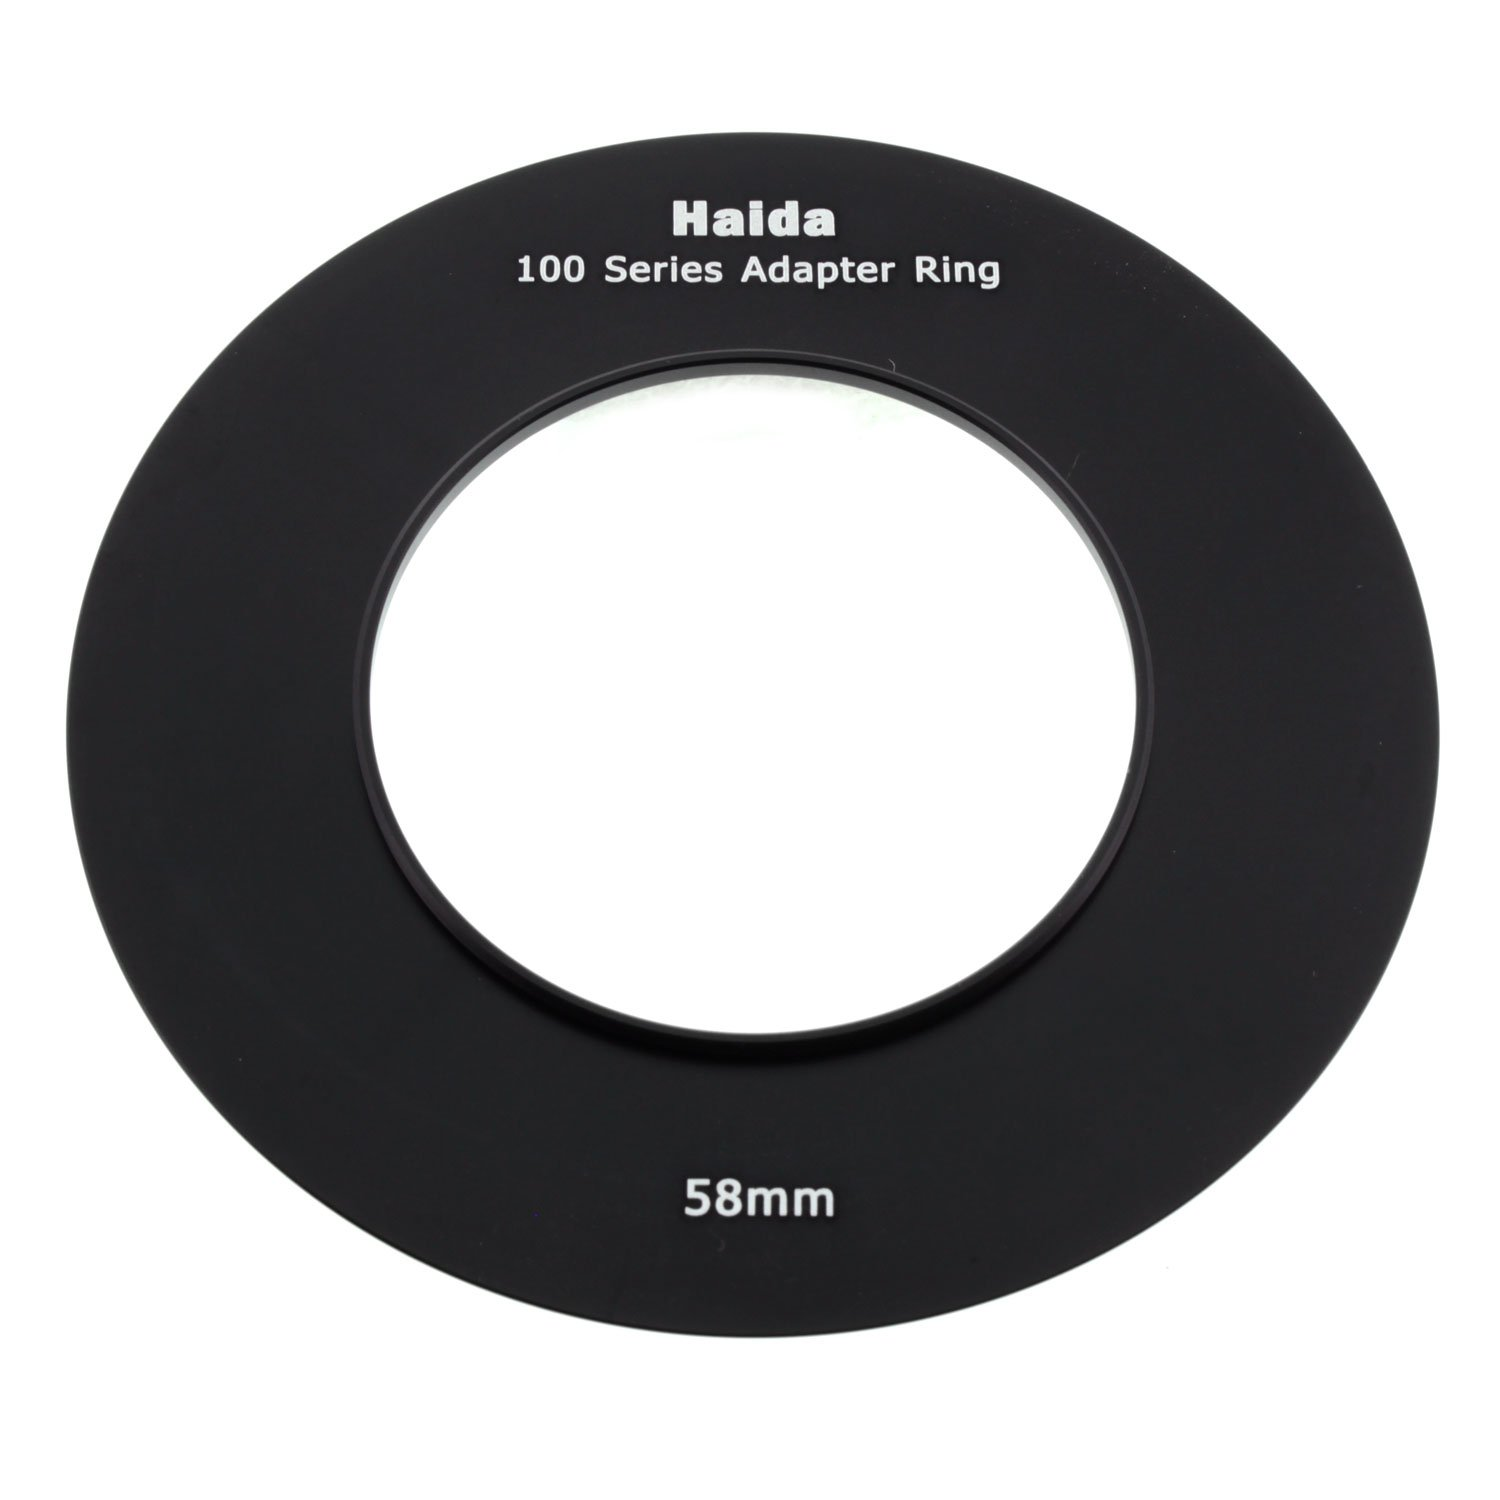 Haida 58mm Metal Adapter ring for 100 Series Filter Holder